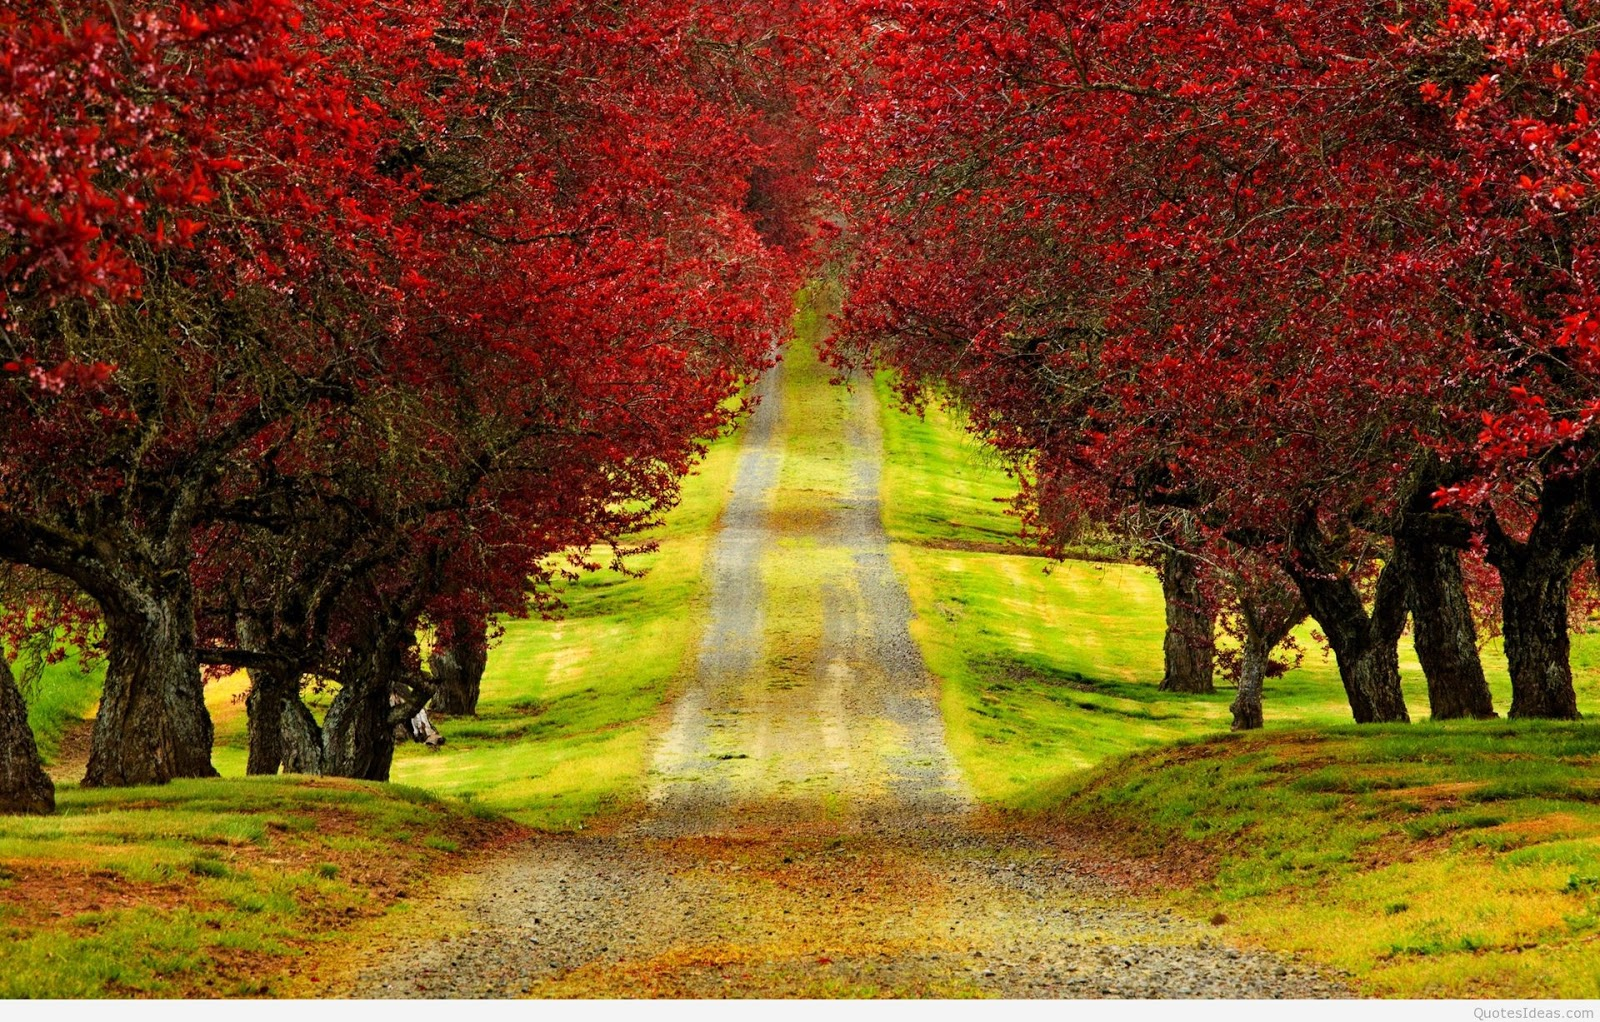 download red trees autumn road beautiful hd wallpaper 3d hd nature tree wallpaper download for pc android mobile wallpapers windows 7 name animation